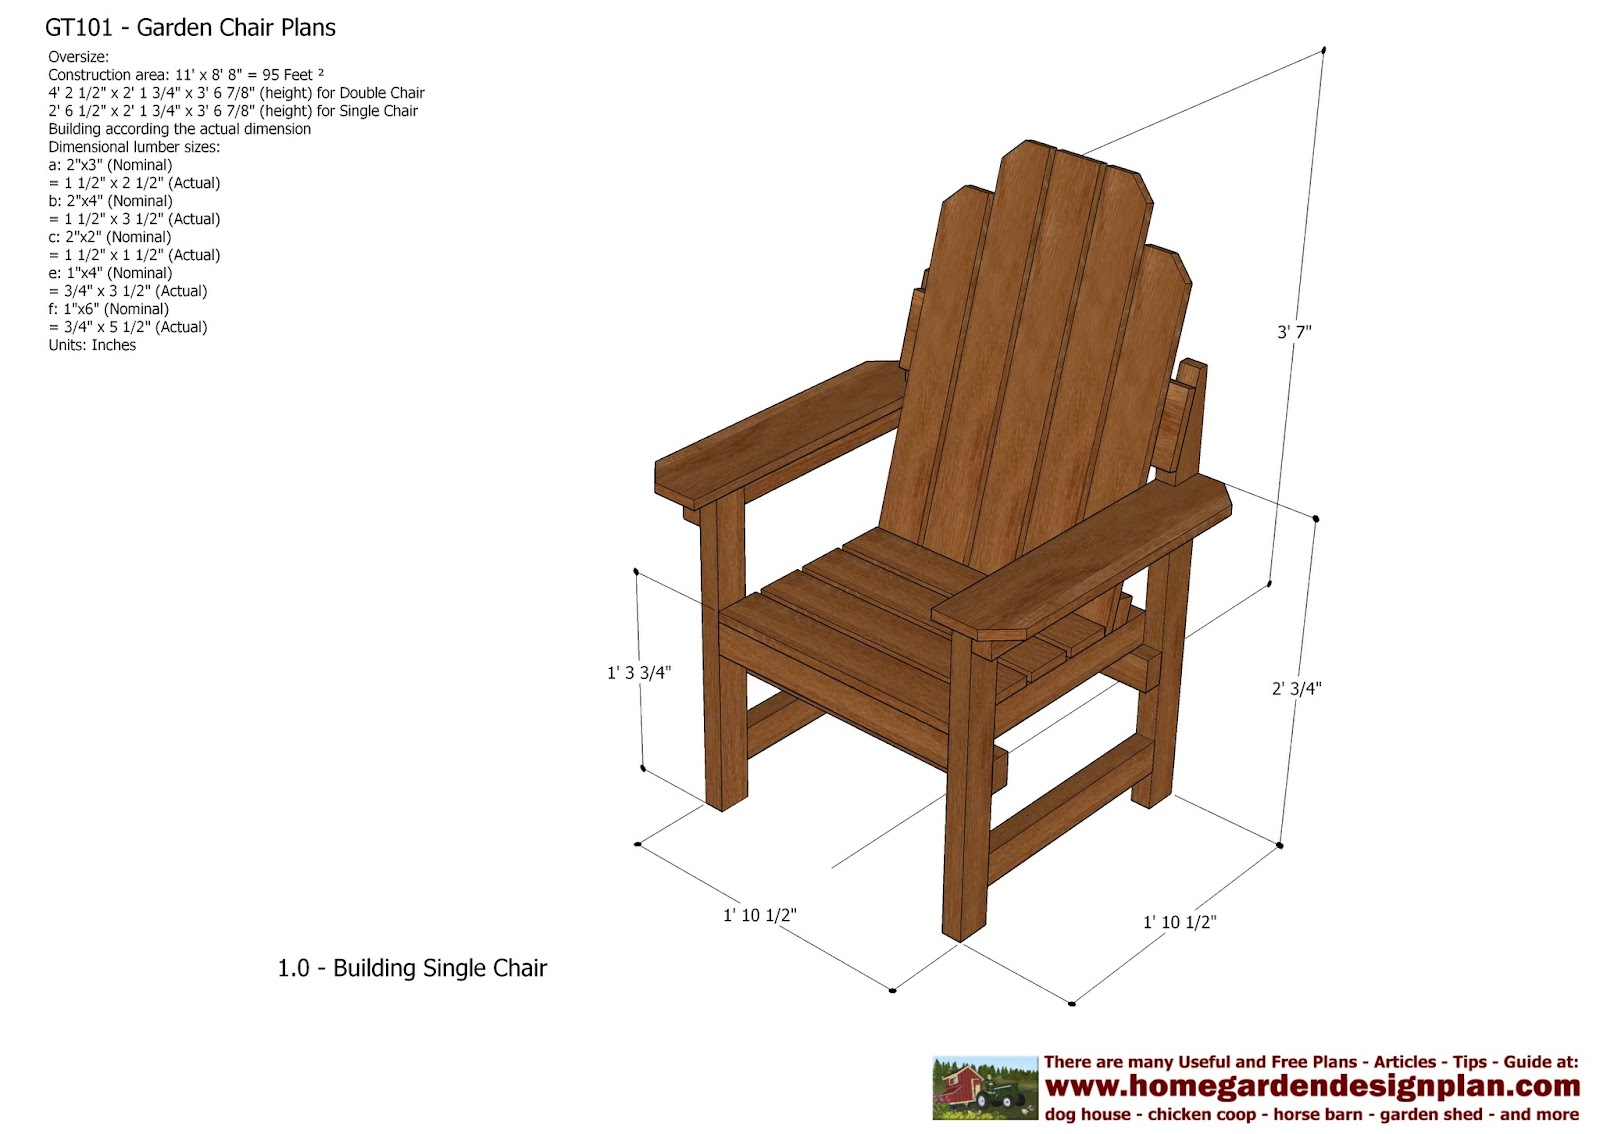 rudy easy teak outdoor furniture plans wood plans us uk ca